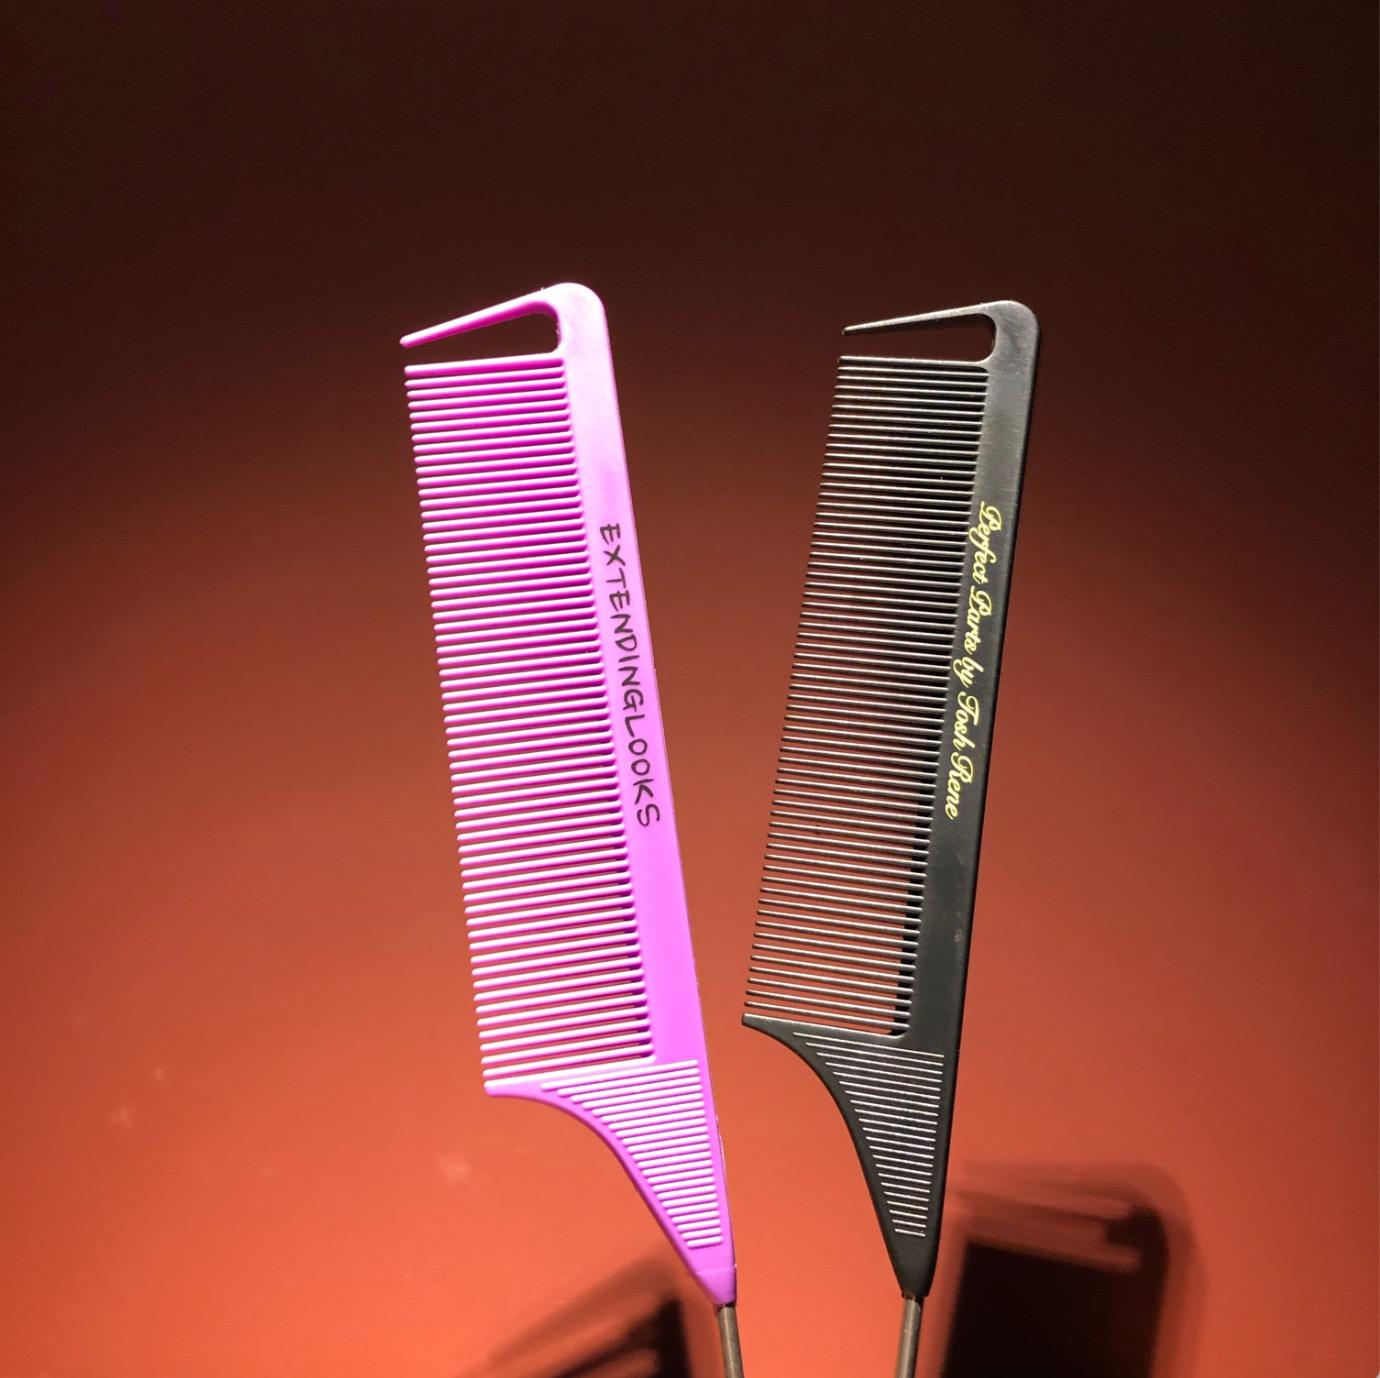 Ordinary Her Braids Precision Combs Custom Made Good Metal Comb